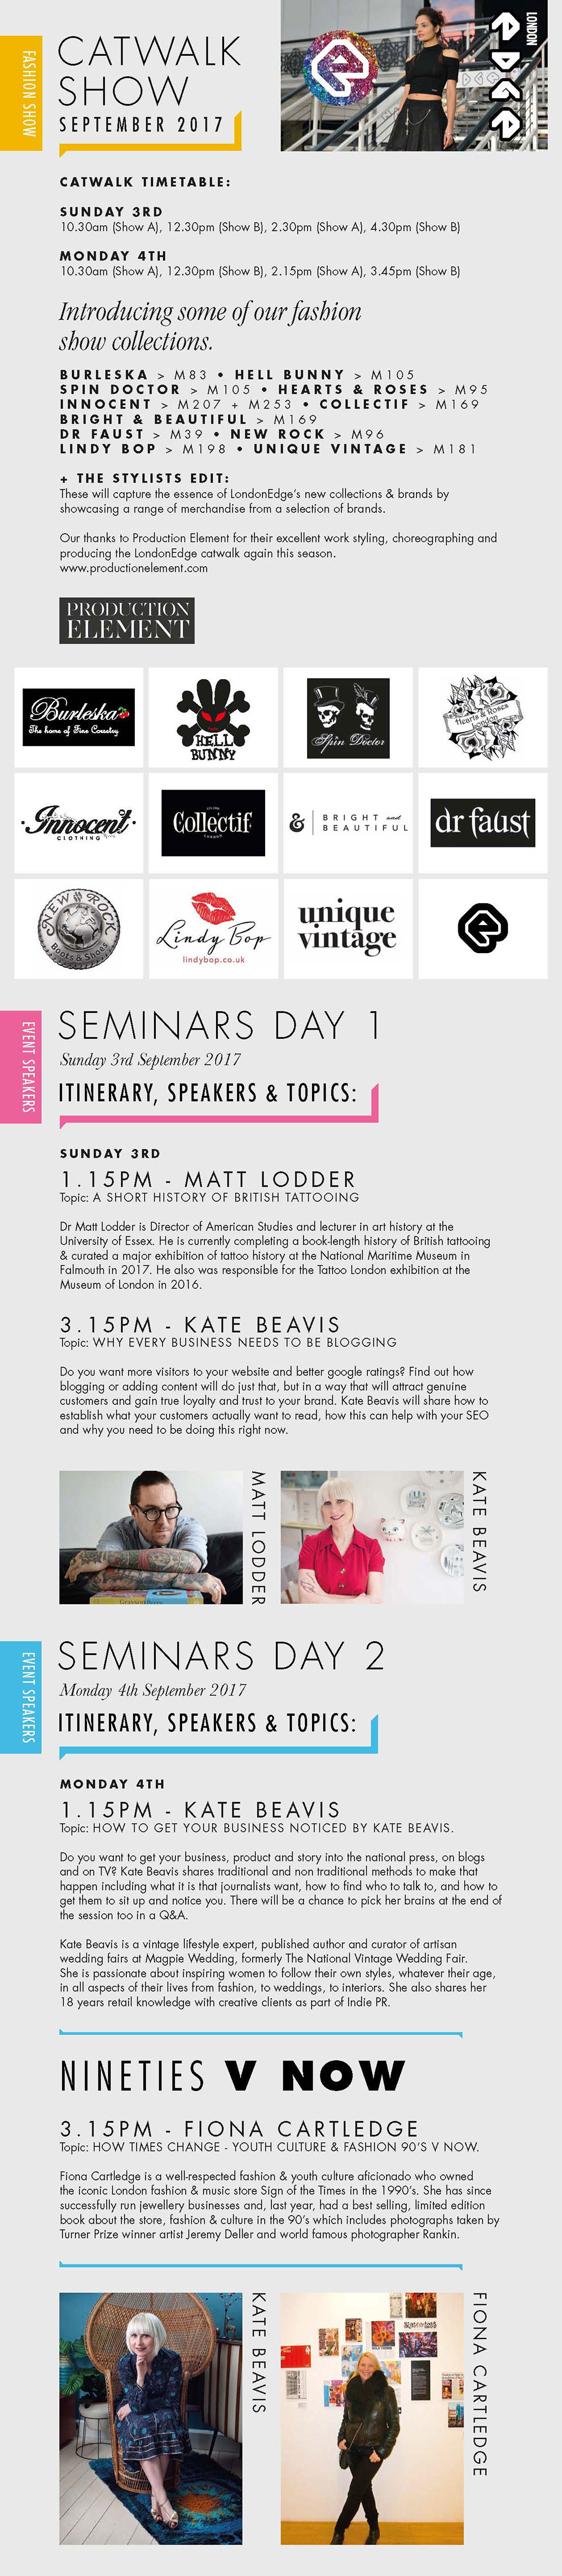 LondonEdge 3rd - 4th September 2017 Catwalk and Seminar Schedule